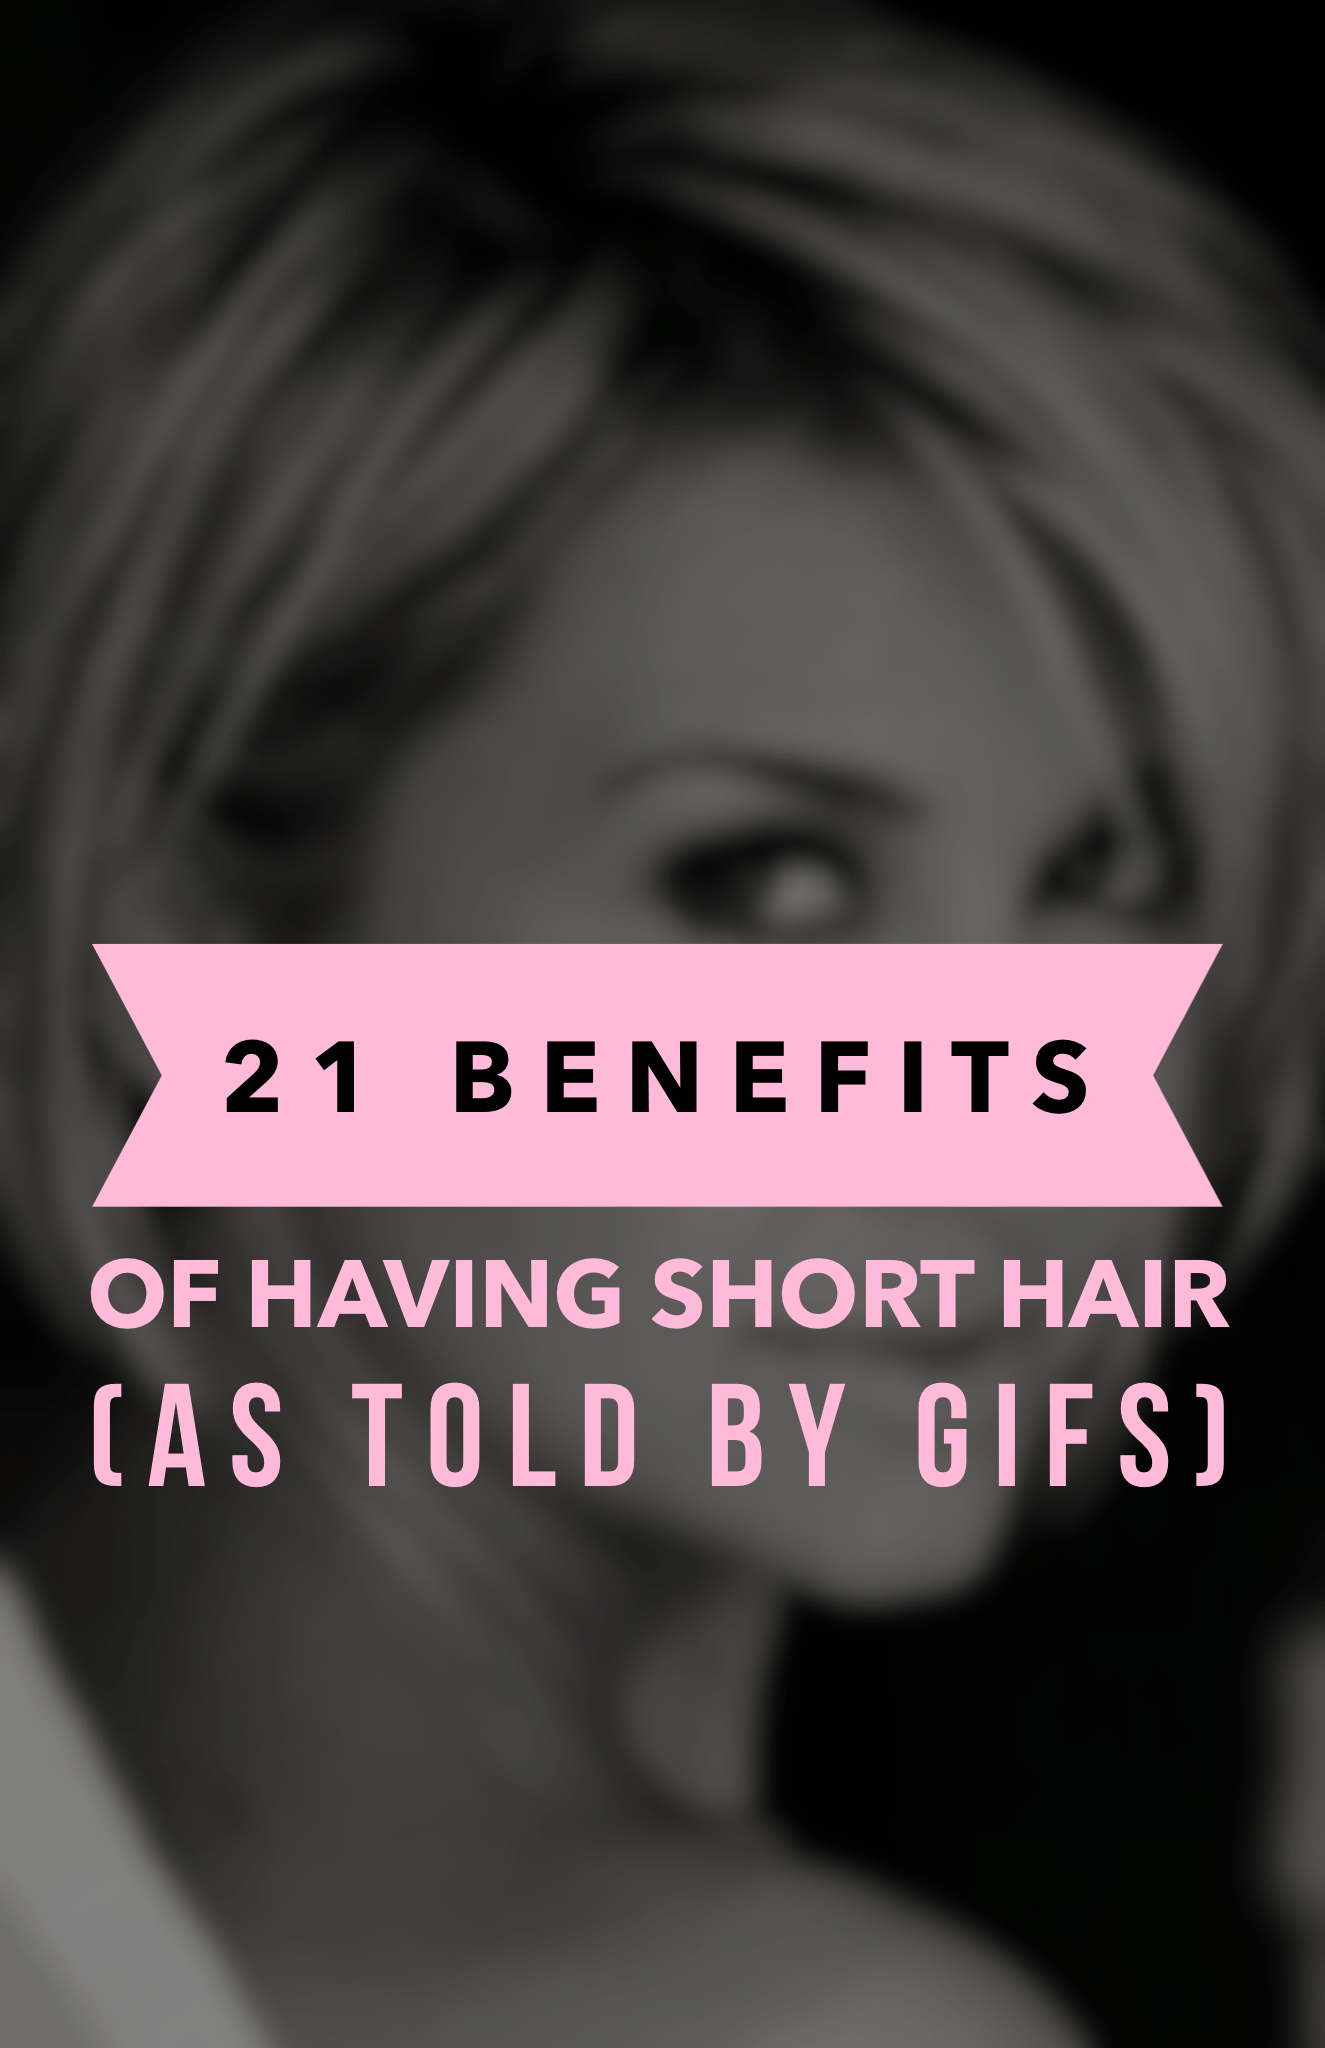 21 benefits of having short hair, told through animated GIFs.